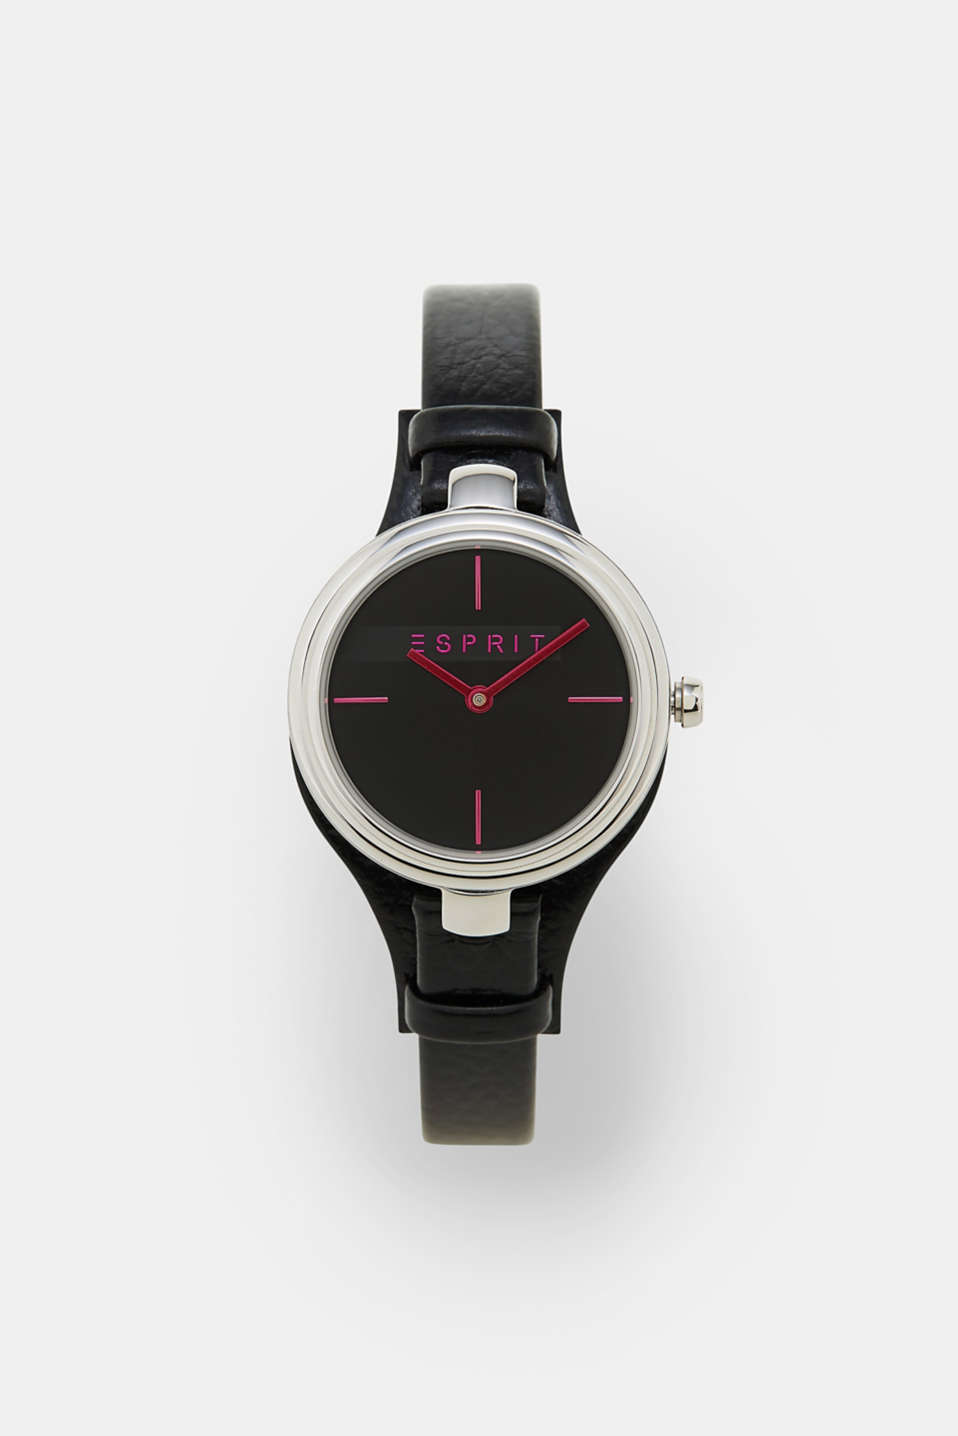 Esprit - Stainless-steel watch + leather strap